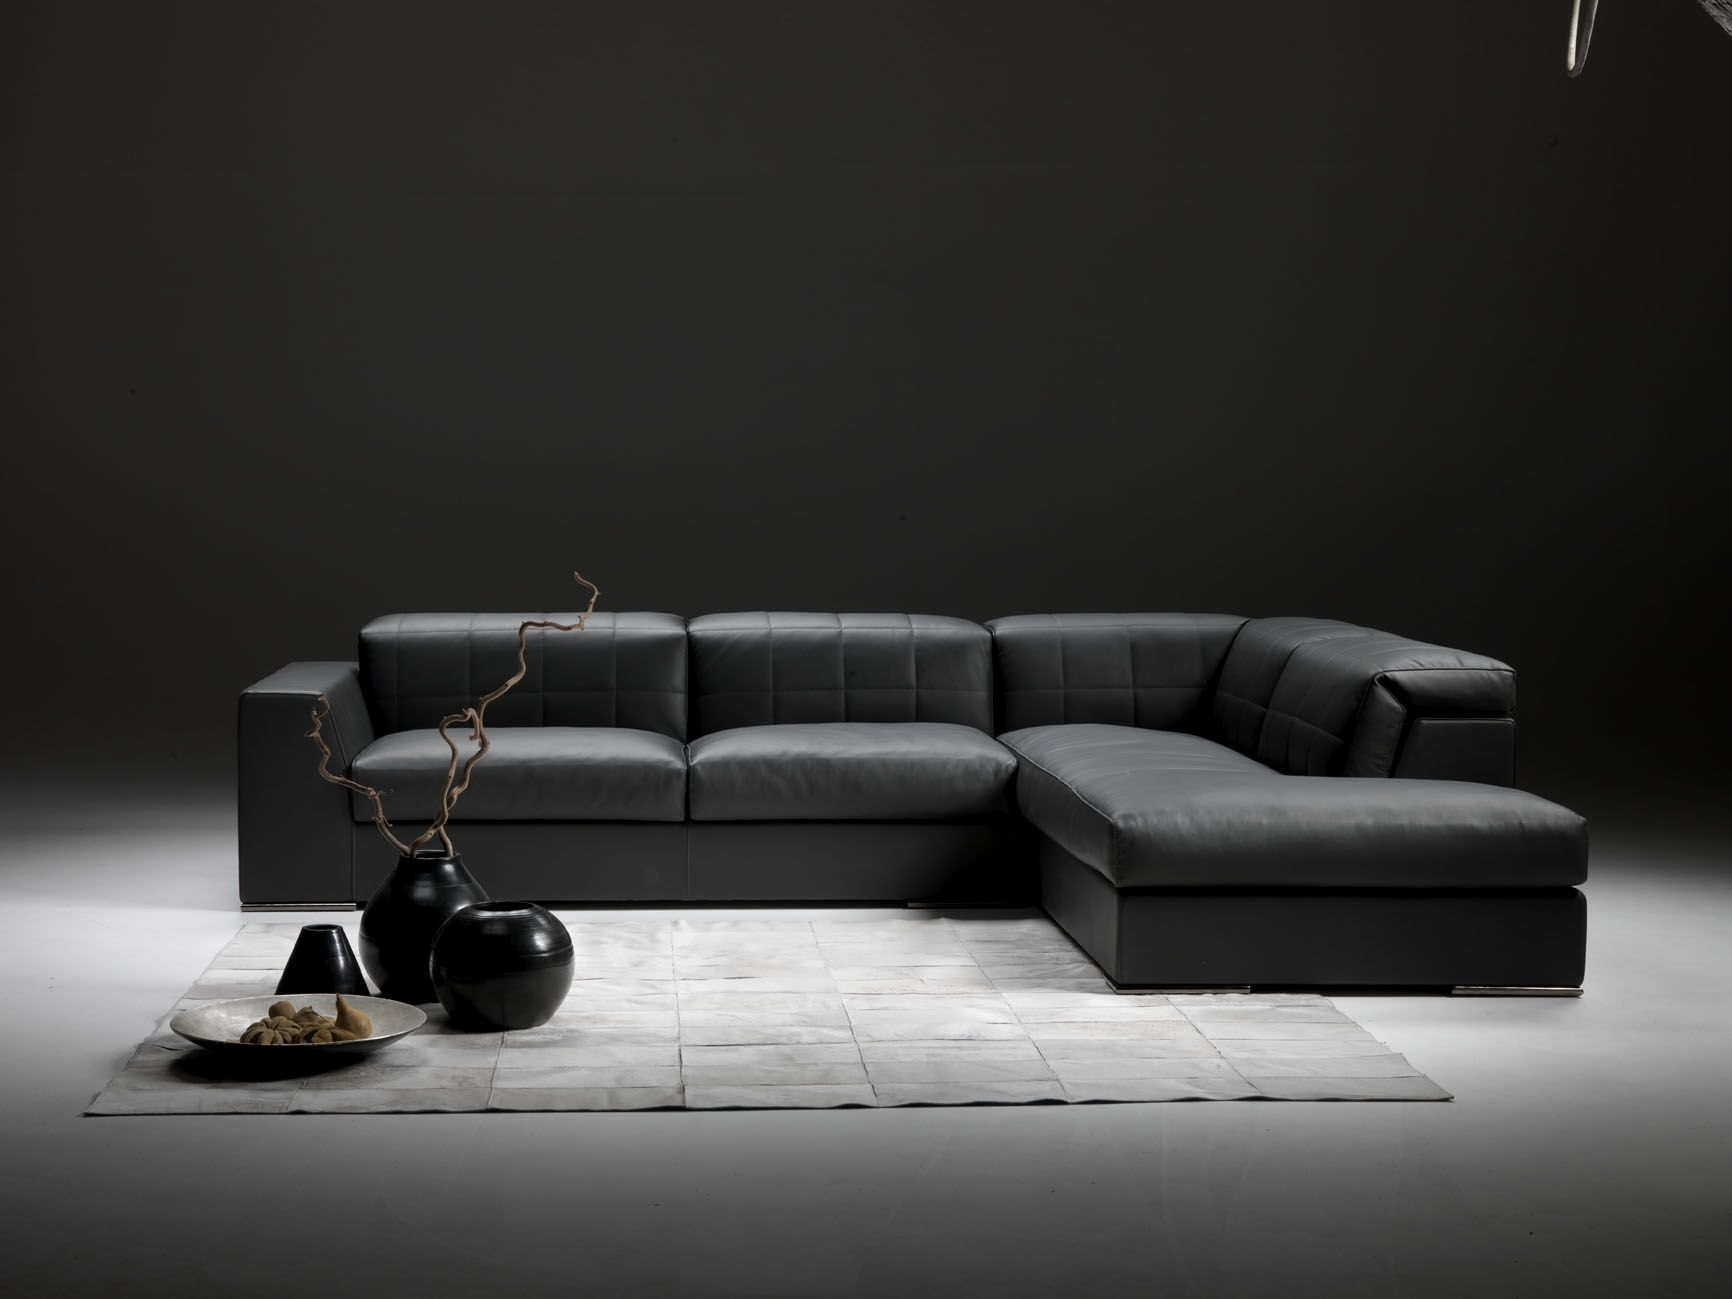 Wondrous Corner Sofa Contemporary Leather 4 Seater Zoe Gyform Pdpeps Interior Chair Design Pdpepsorg